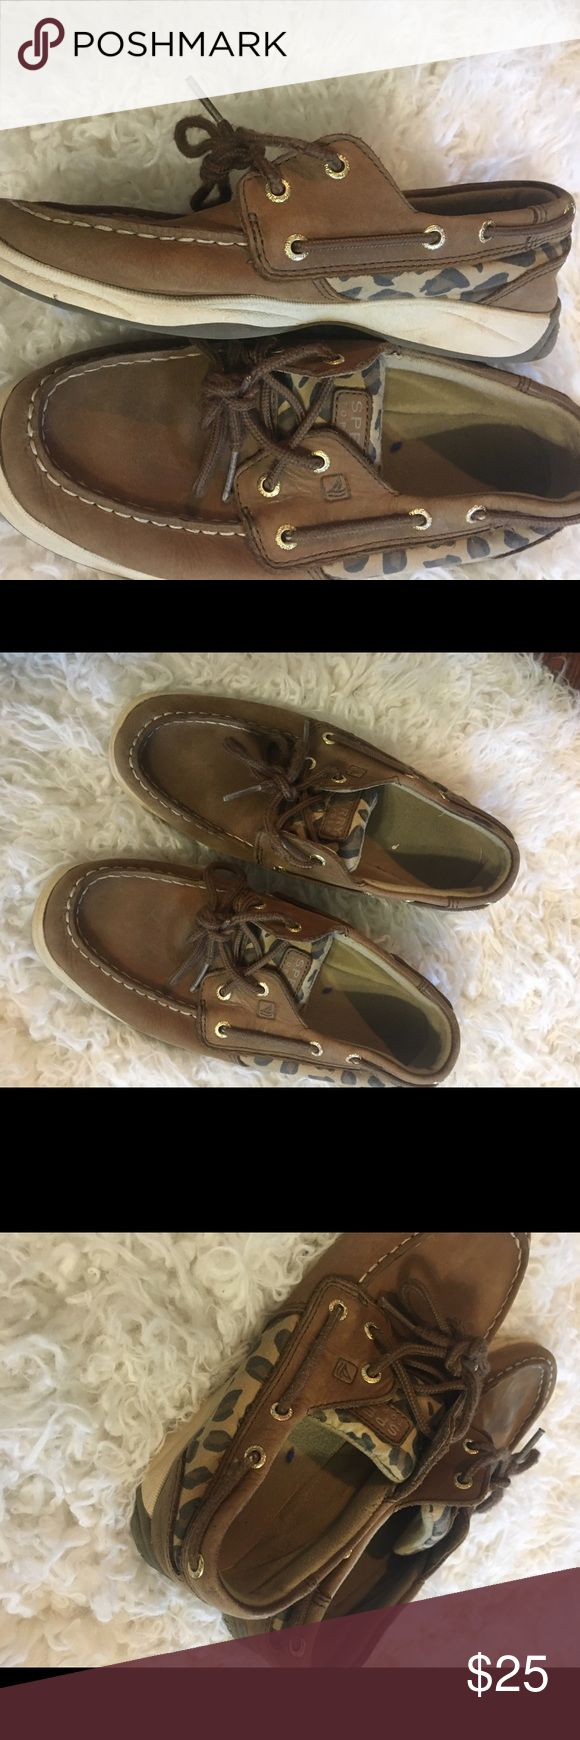 GIRLS leopard sperrys Worn but lots of life left no damage! Sperry Top-Sider Shoes